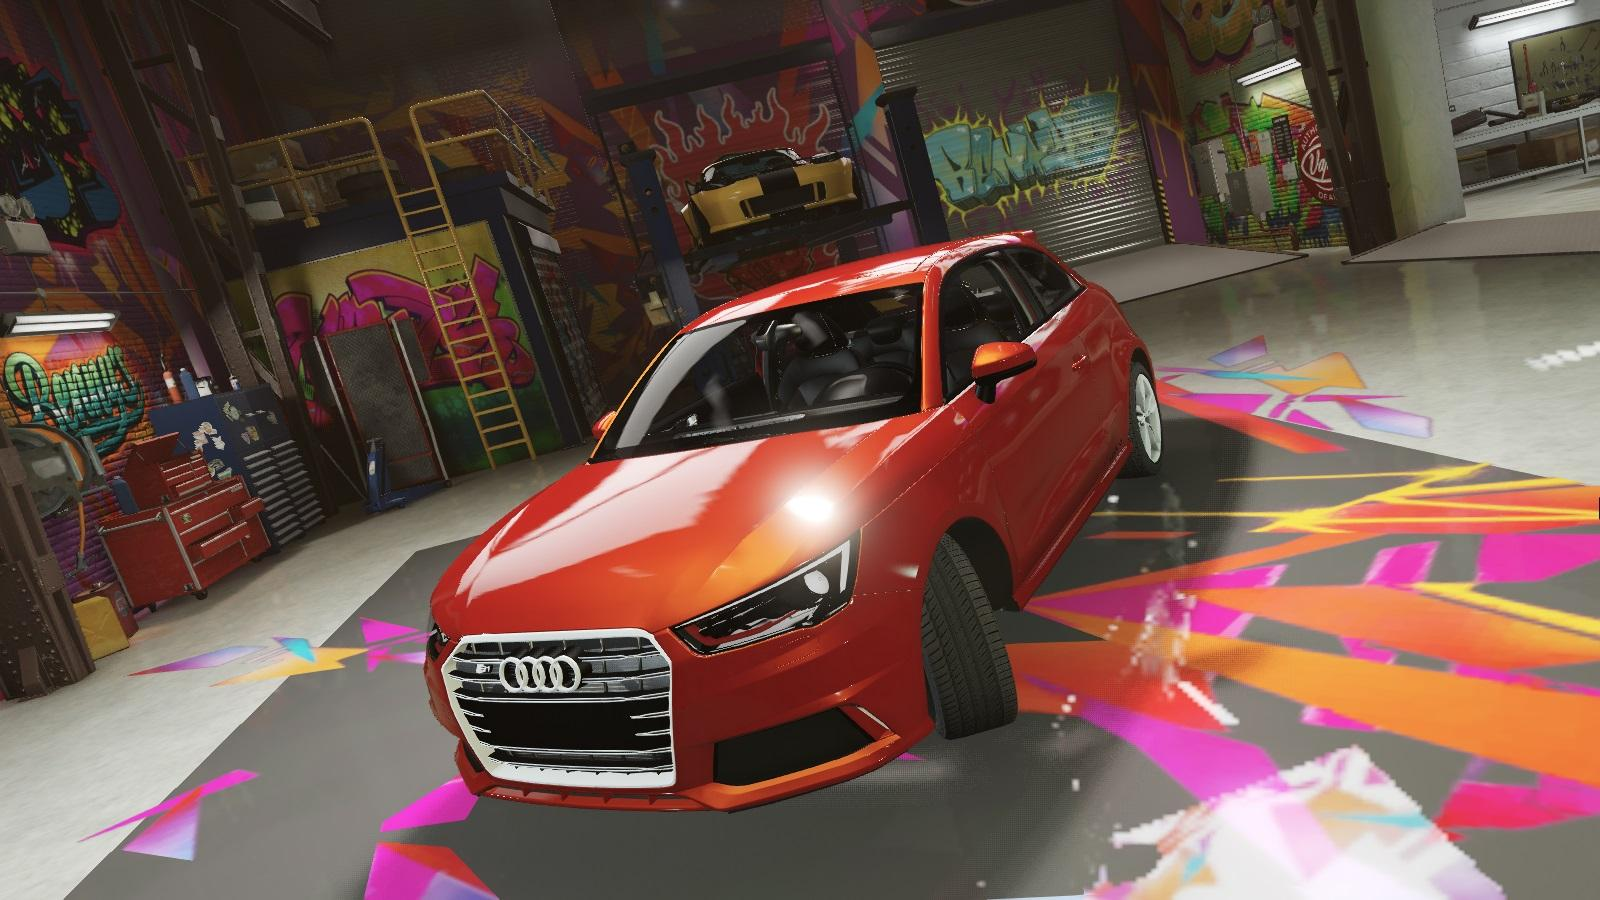 2015 audi s1 quattro add on gta5. Black Bedroom Furniture Sets. Home Design Ideas